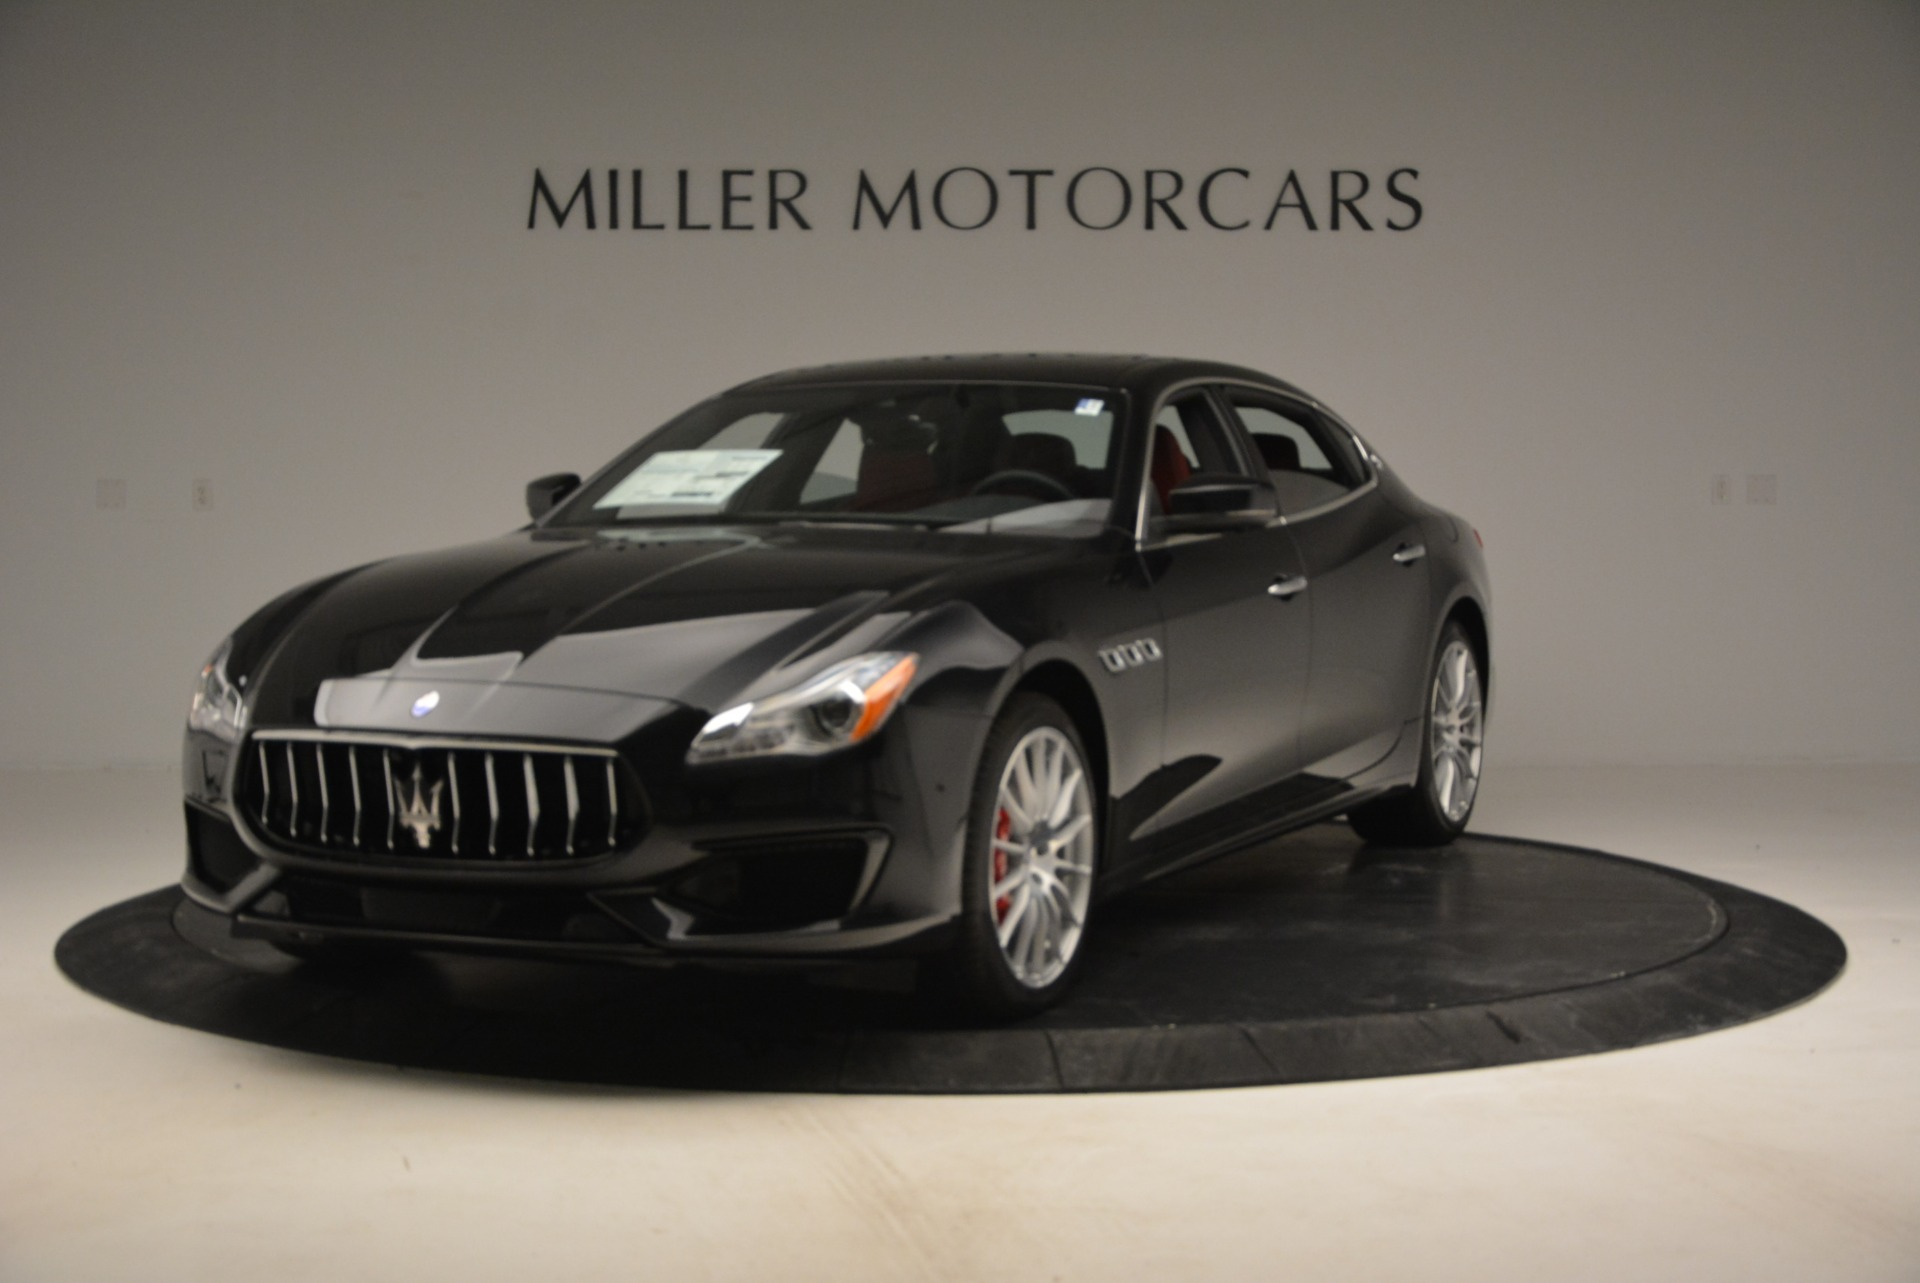 New 2017 Maserati Quattroporte S Q4 GranSport for sale Sold at Rolls-Royce Motor Cars Greenwich in Greenwich CT 06830 1